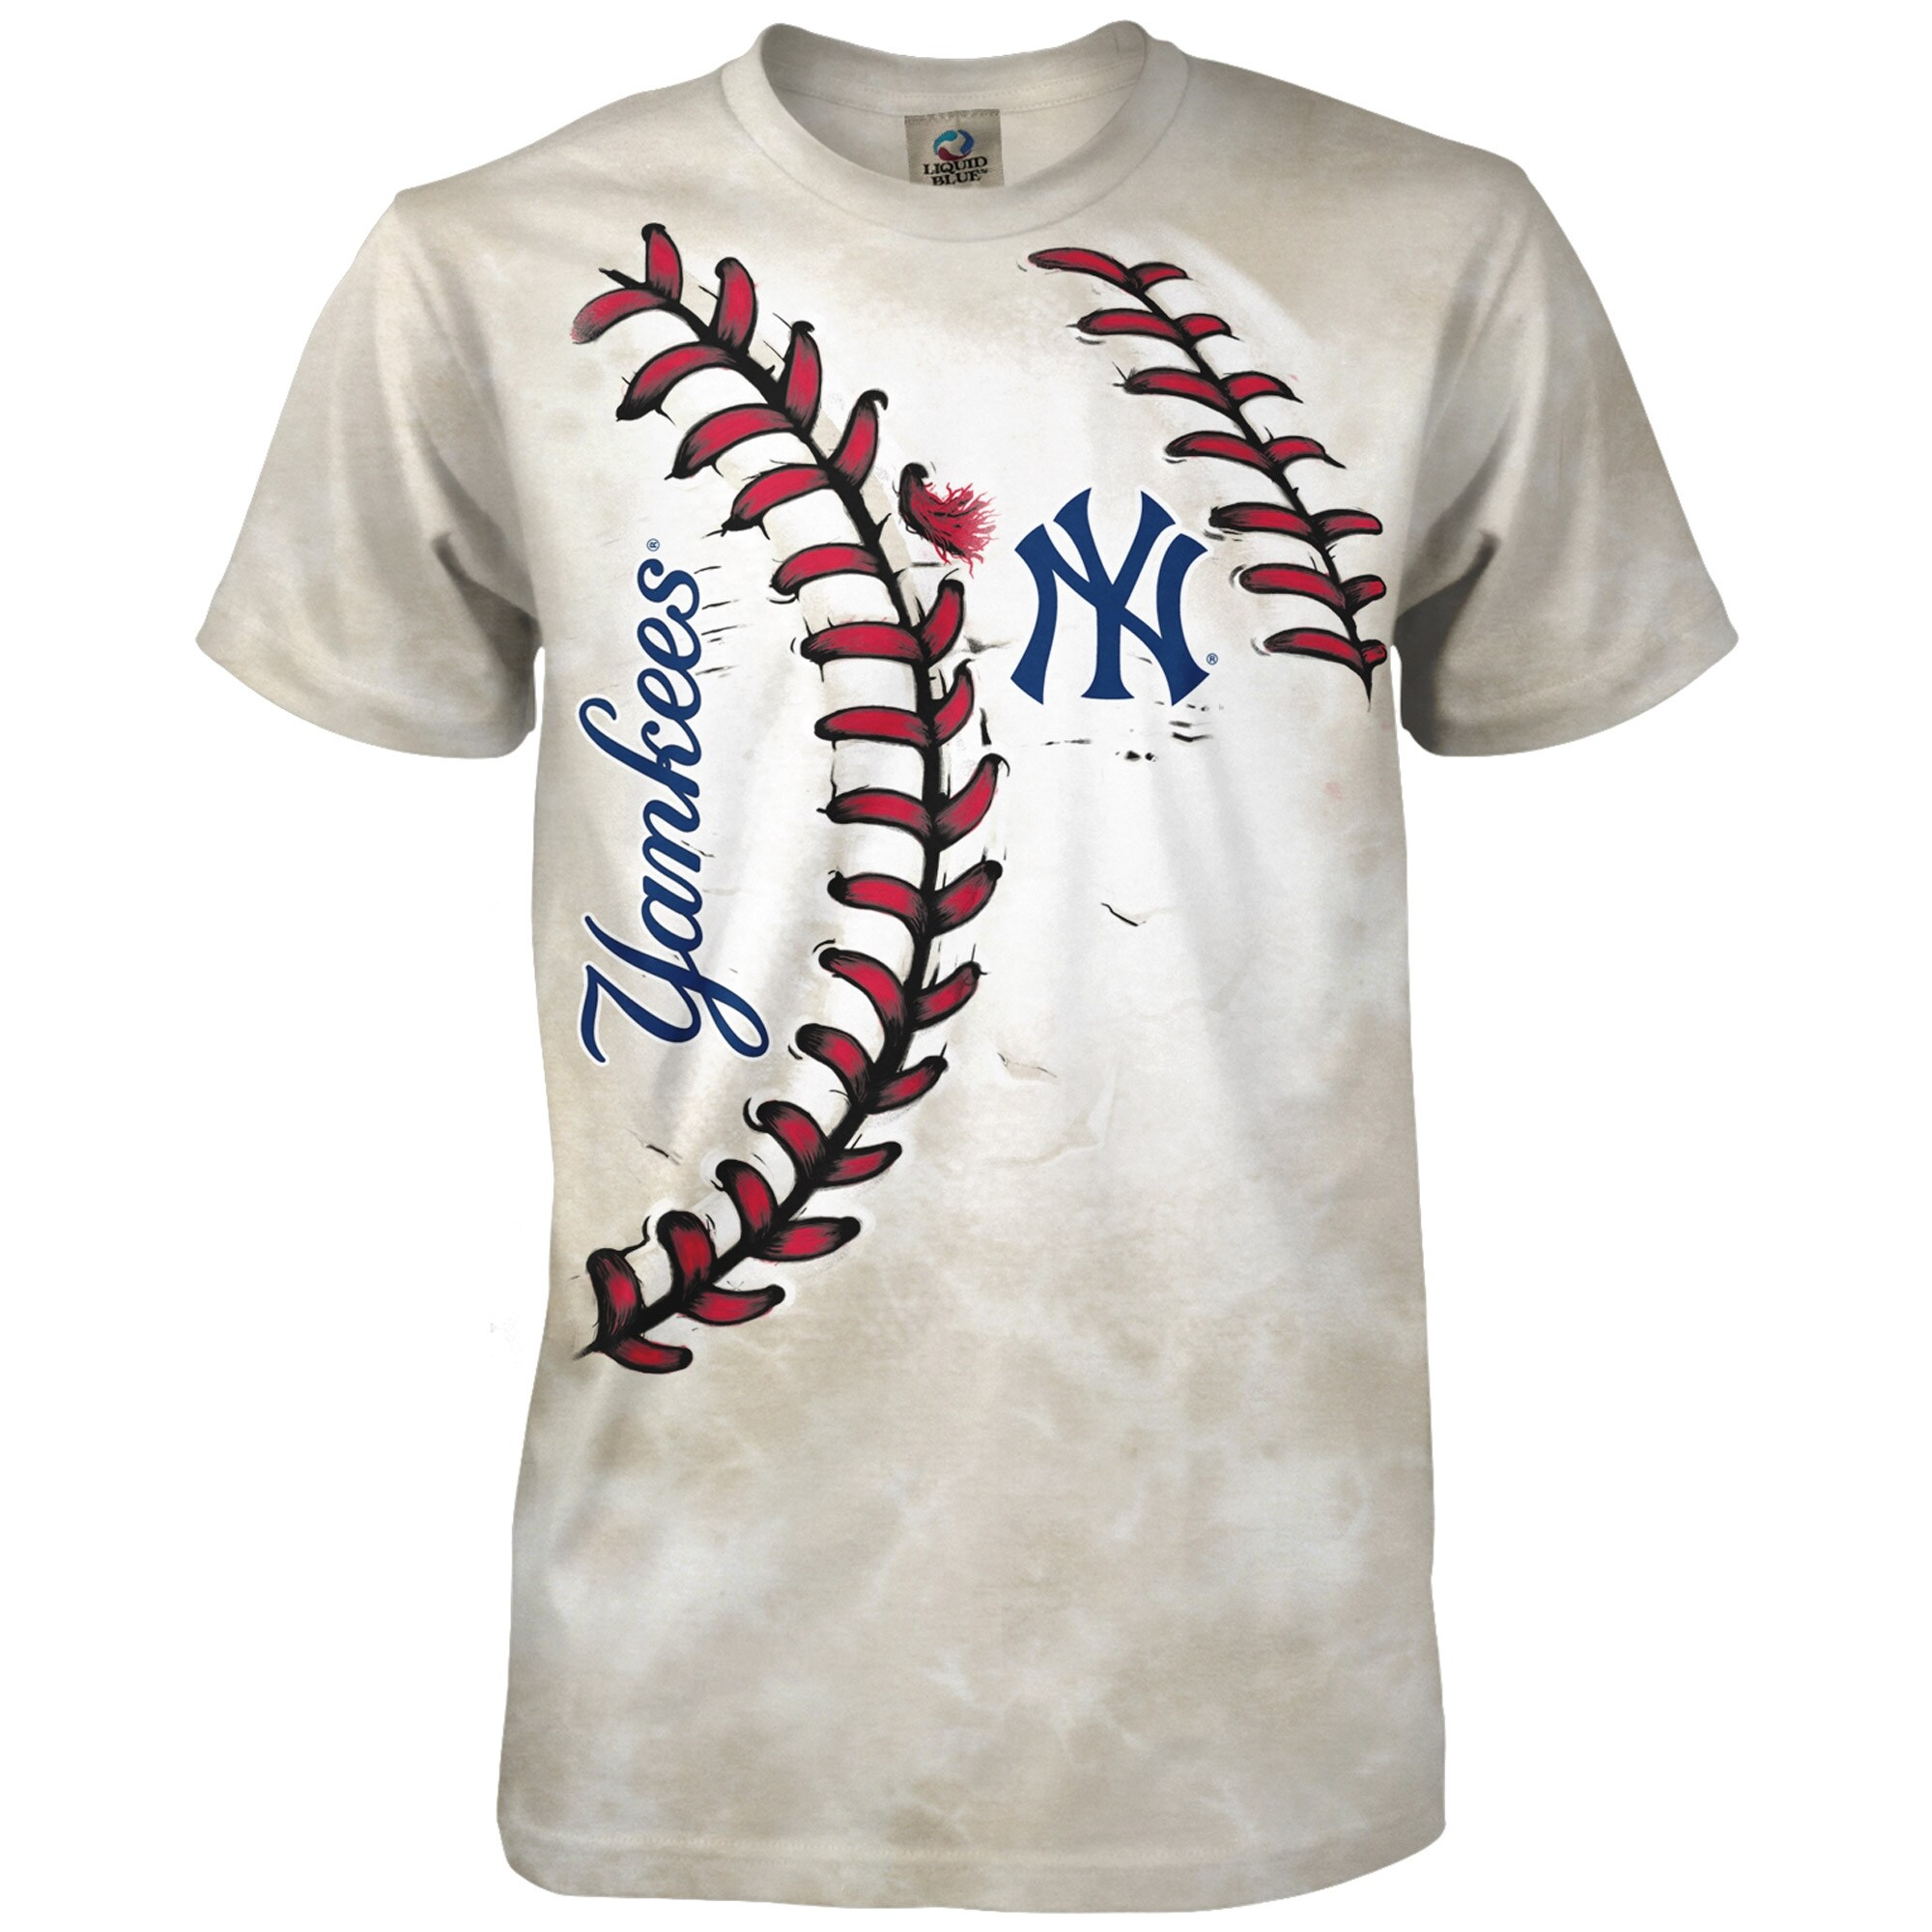 New York Yankees Youth Hardball T-Shirt - Cream